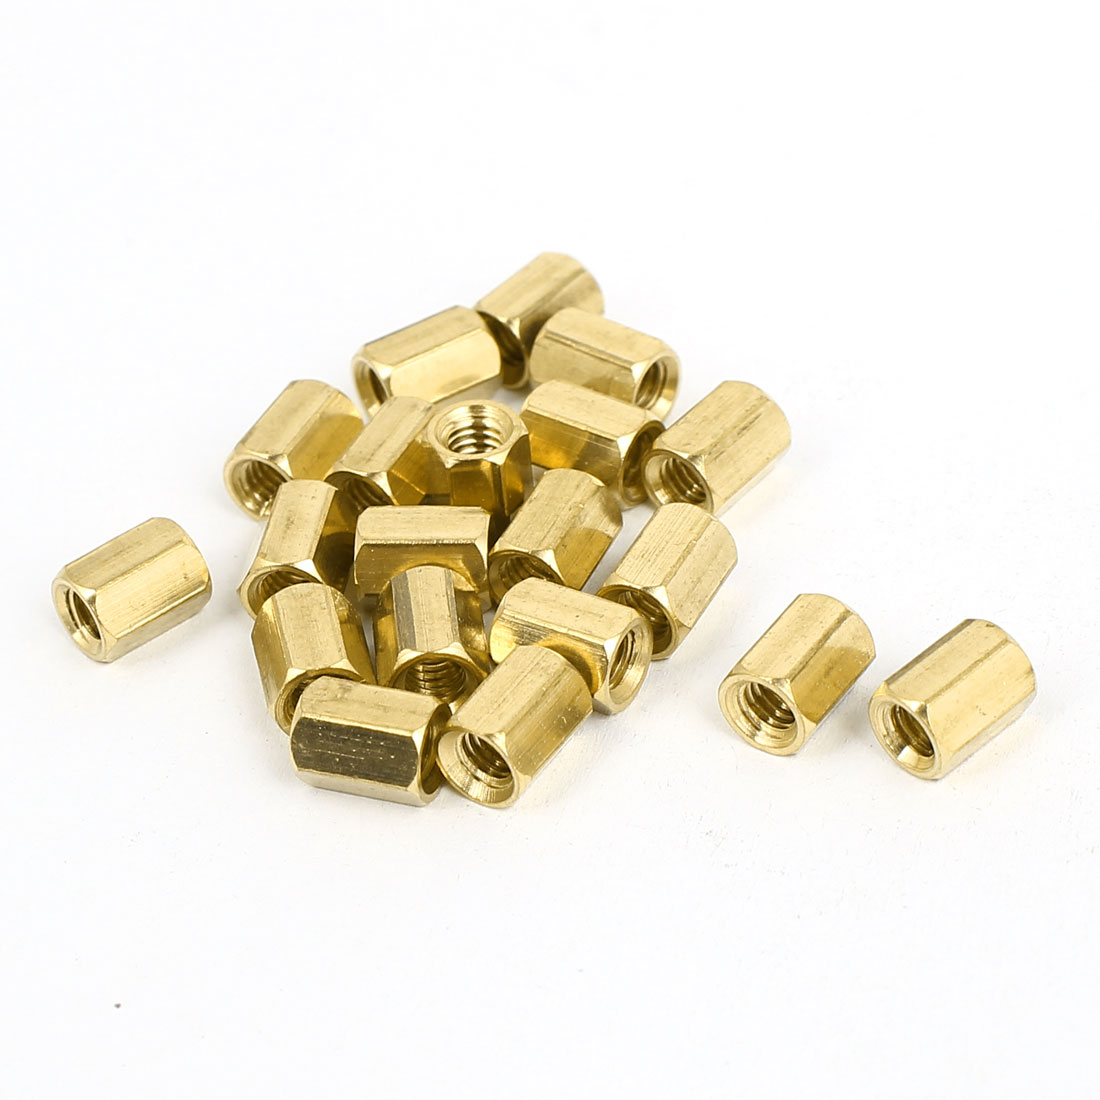 M4x8mm Brass Hex Hexagonal Female Threaded Standoff Spacer Pillars 20pcs